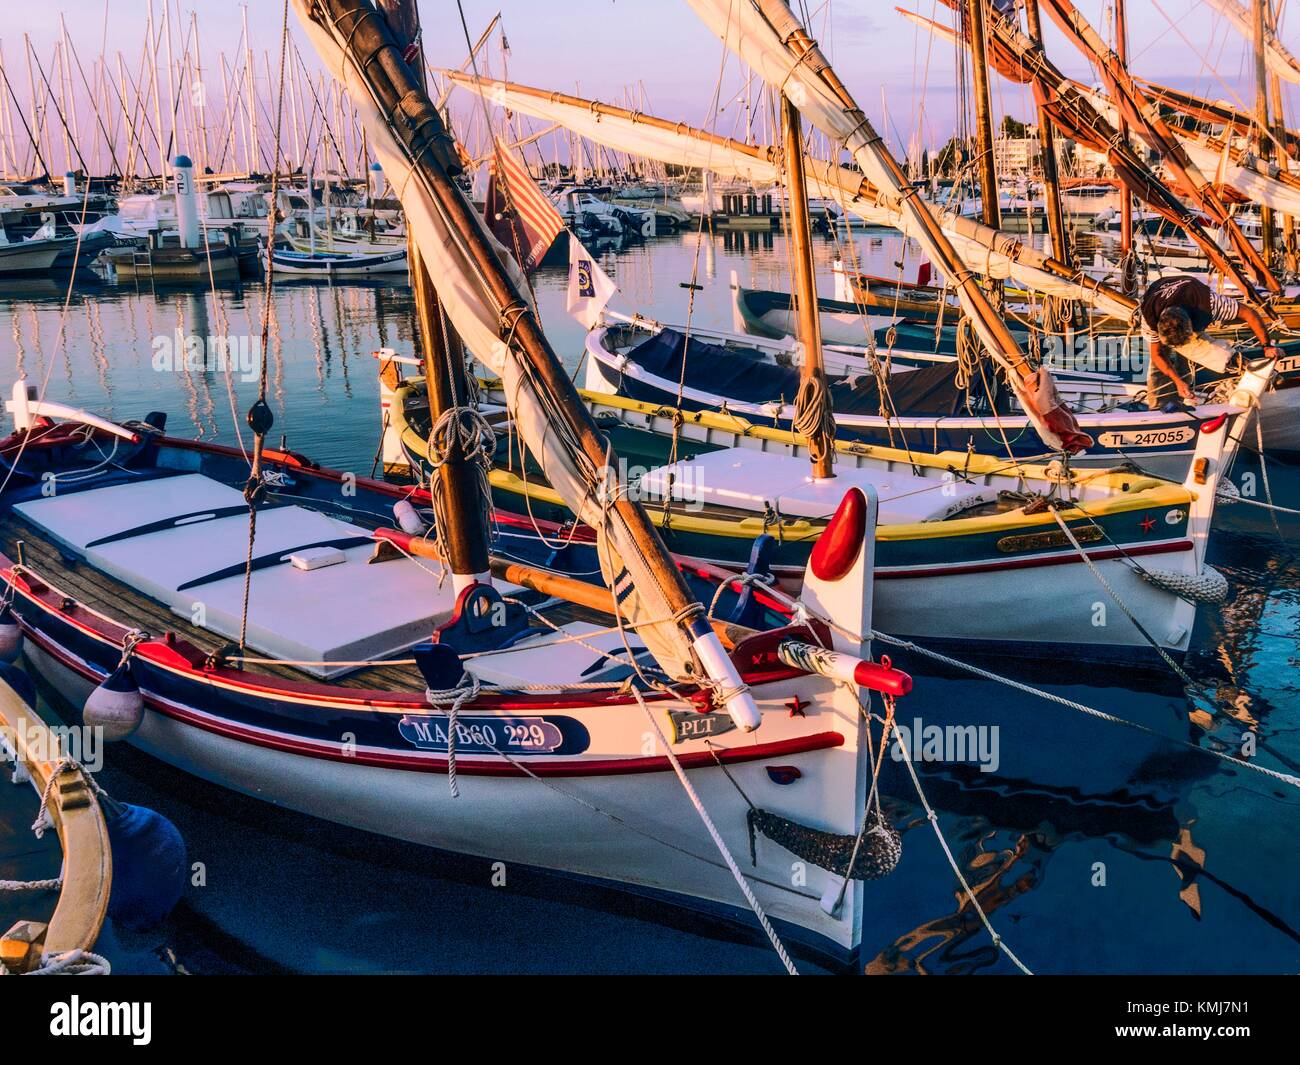 France, Paca-Cote d´Azur, the traditional fishing boats in the harbour of Bandol. - Stock Image